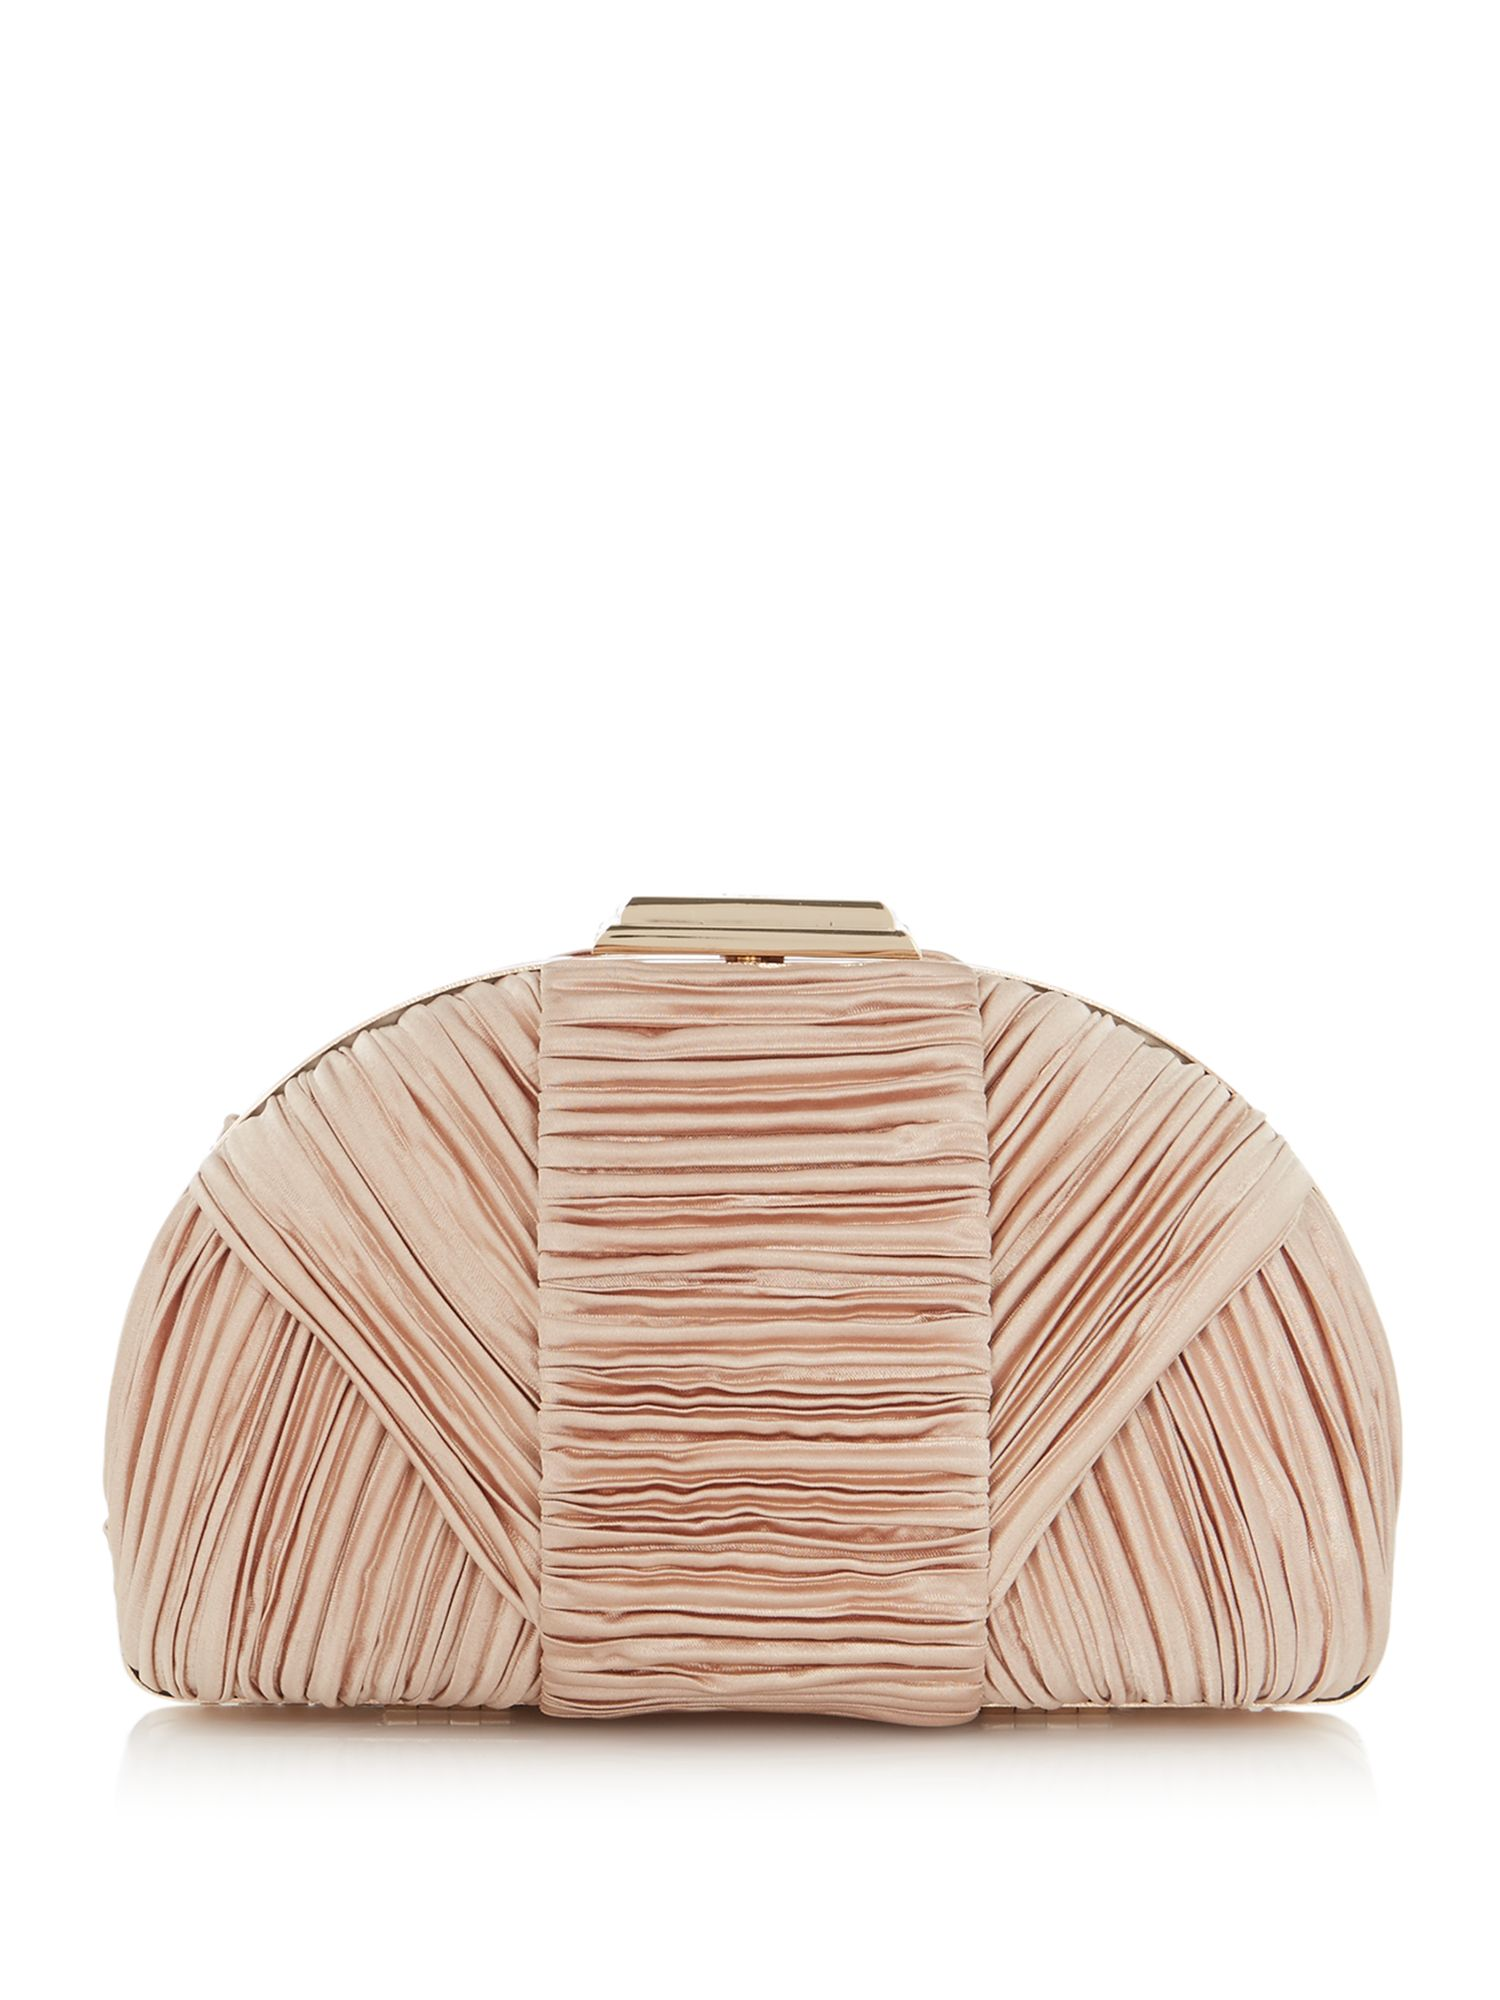 ISSA Cara dome pleated clutch, Gold